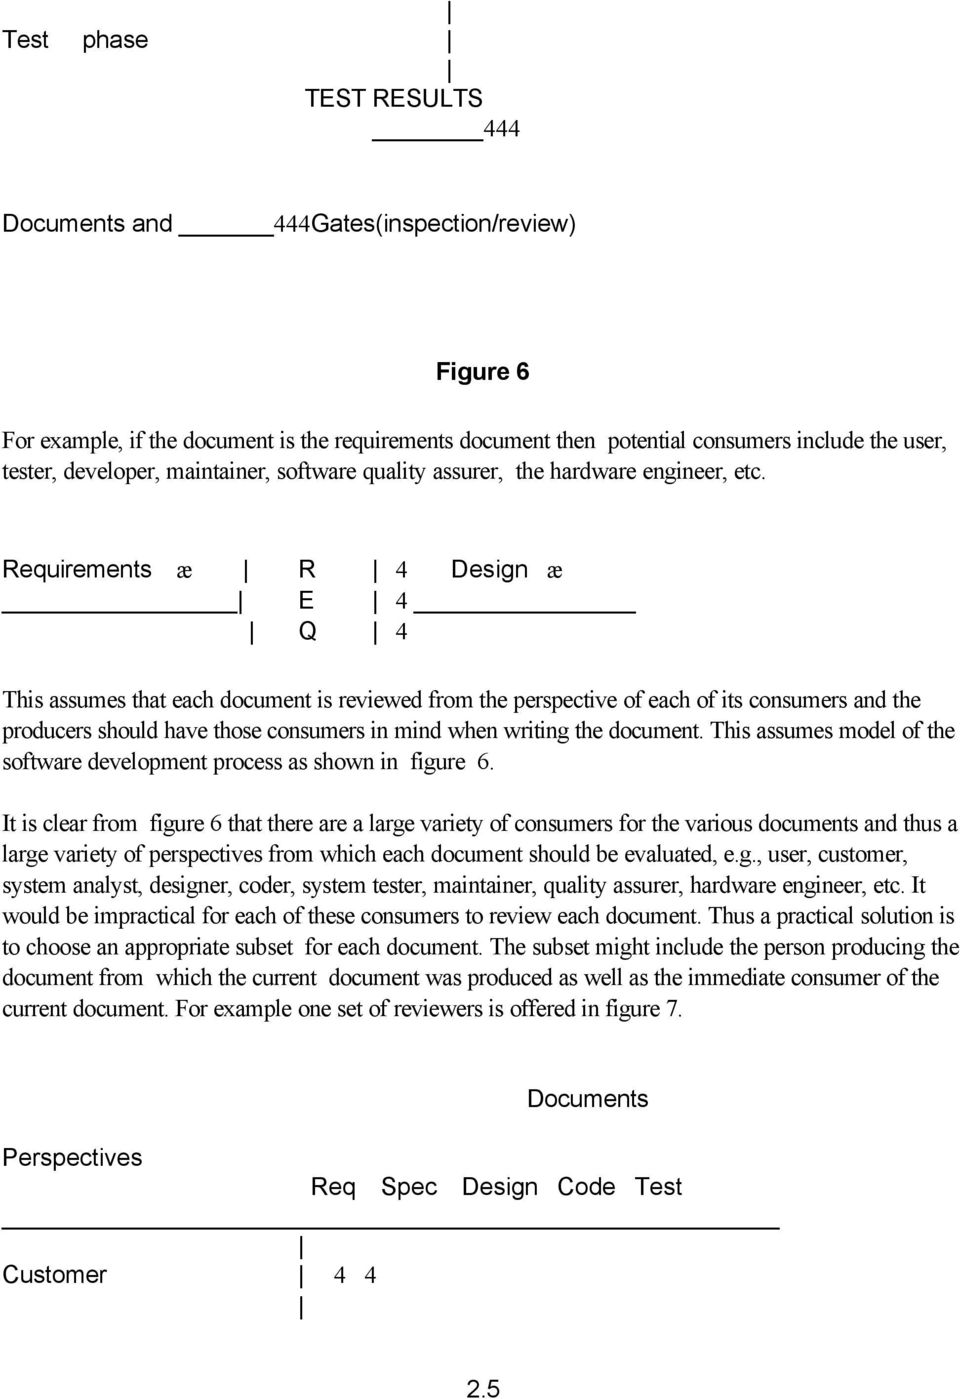 Requirements æ R 4 Design æ E 4 Q 4 This assumes that each document is reviewed from the perspective of each of its consumers and the producers should have those consumers in mind when writing the